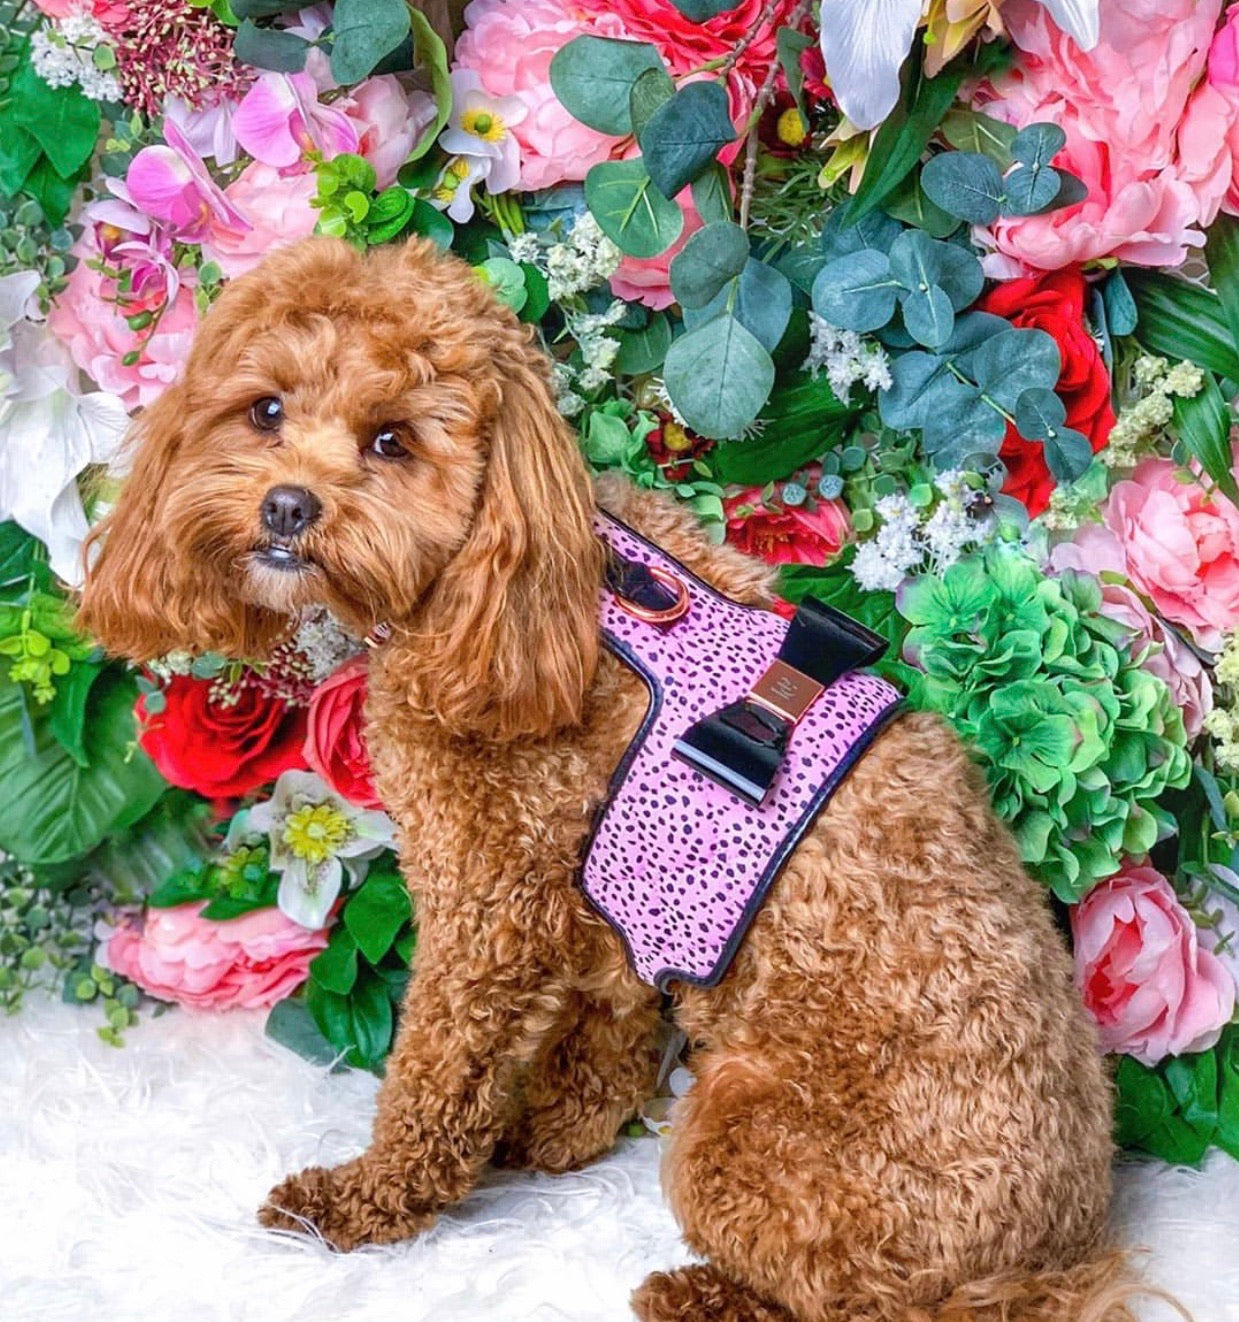 The 'Dahlia' Dog Harness